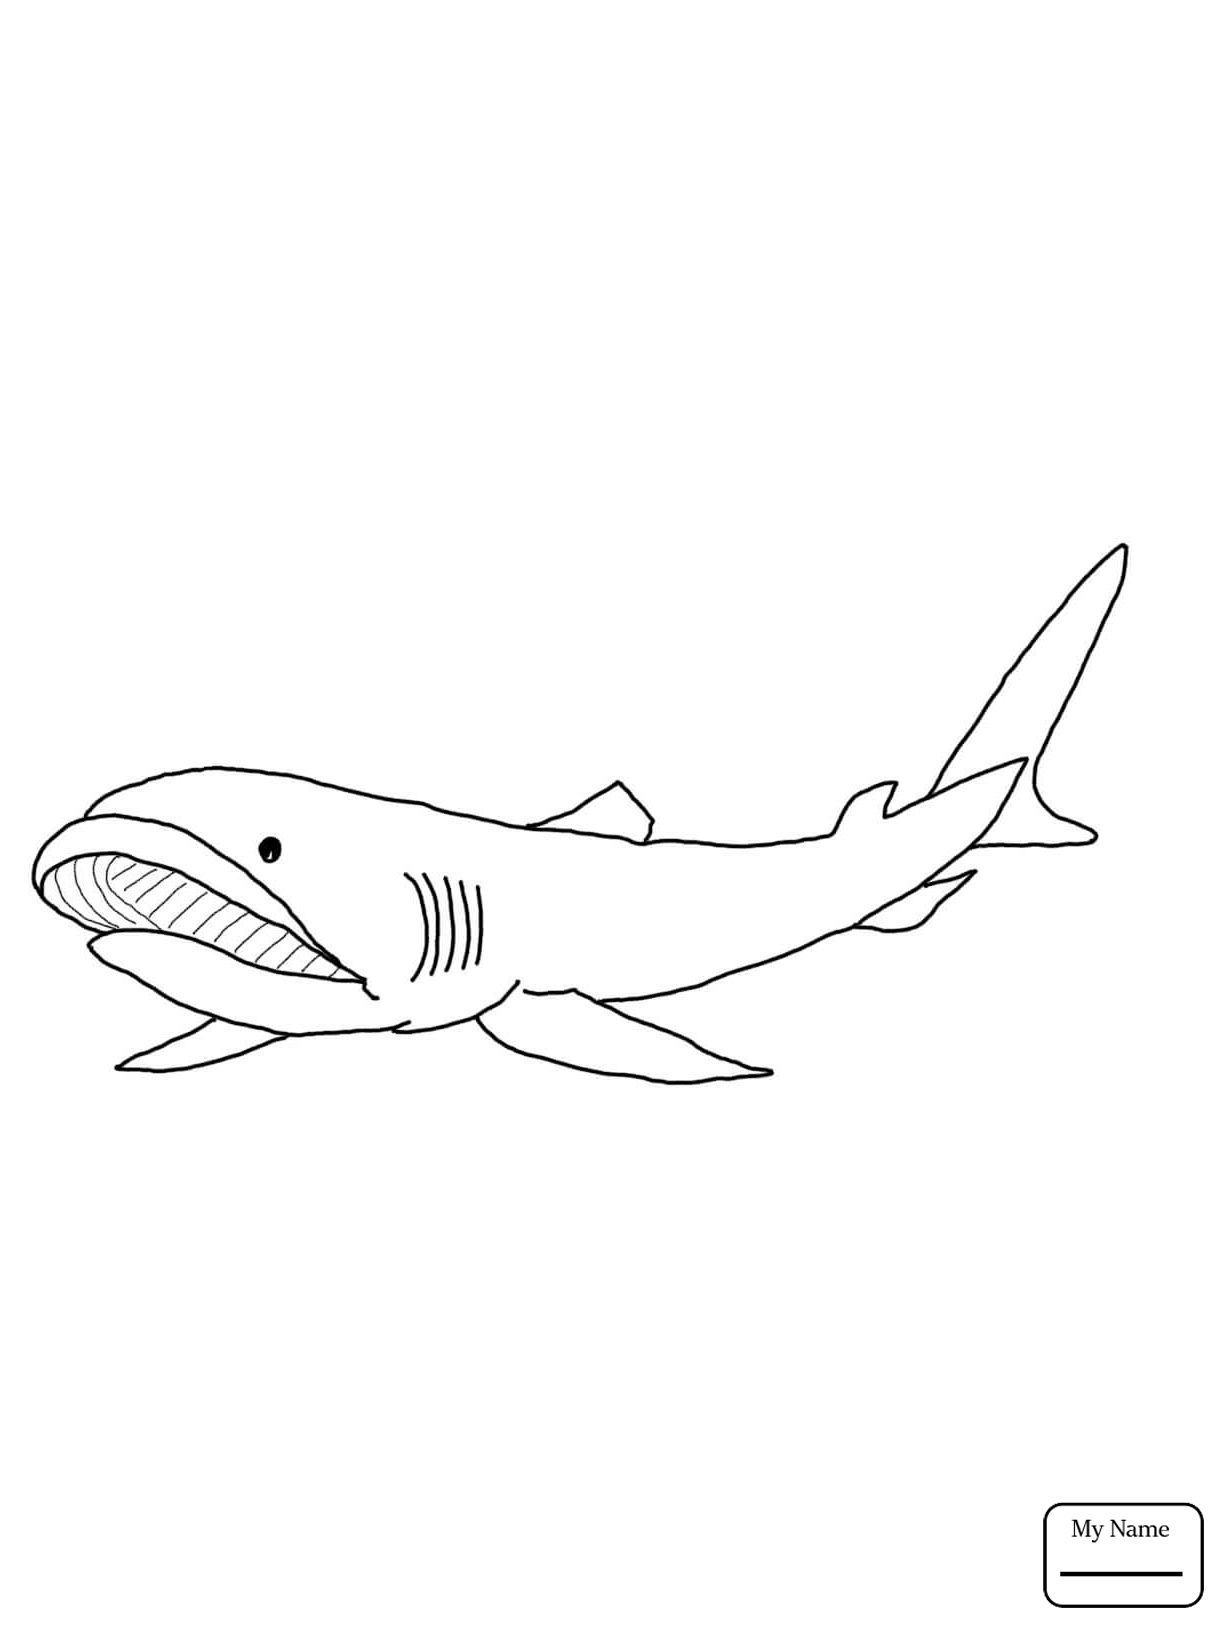 Bull Shark Drawing At Getdrawings Com Free For Personal Use Bull